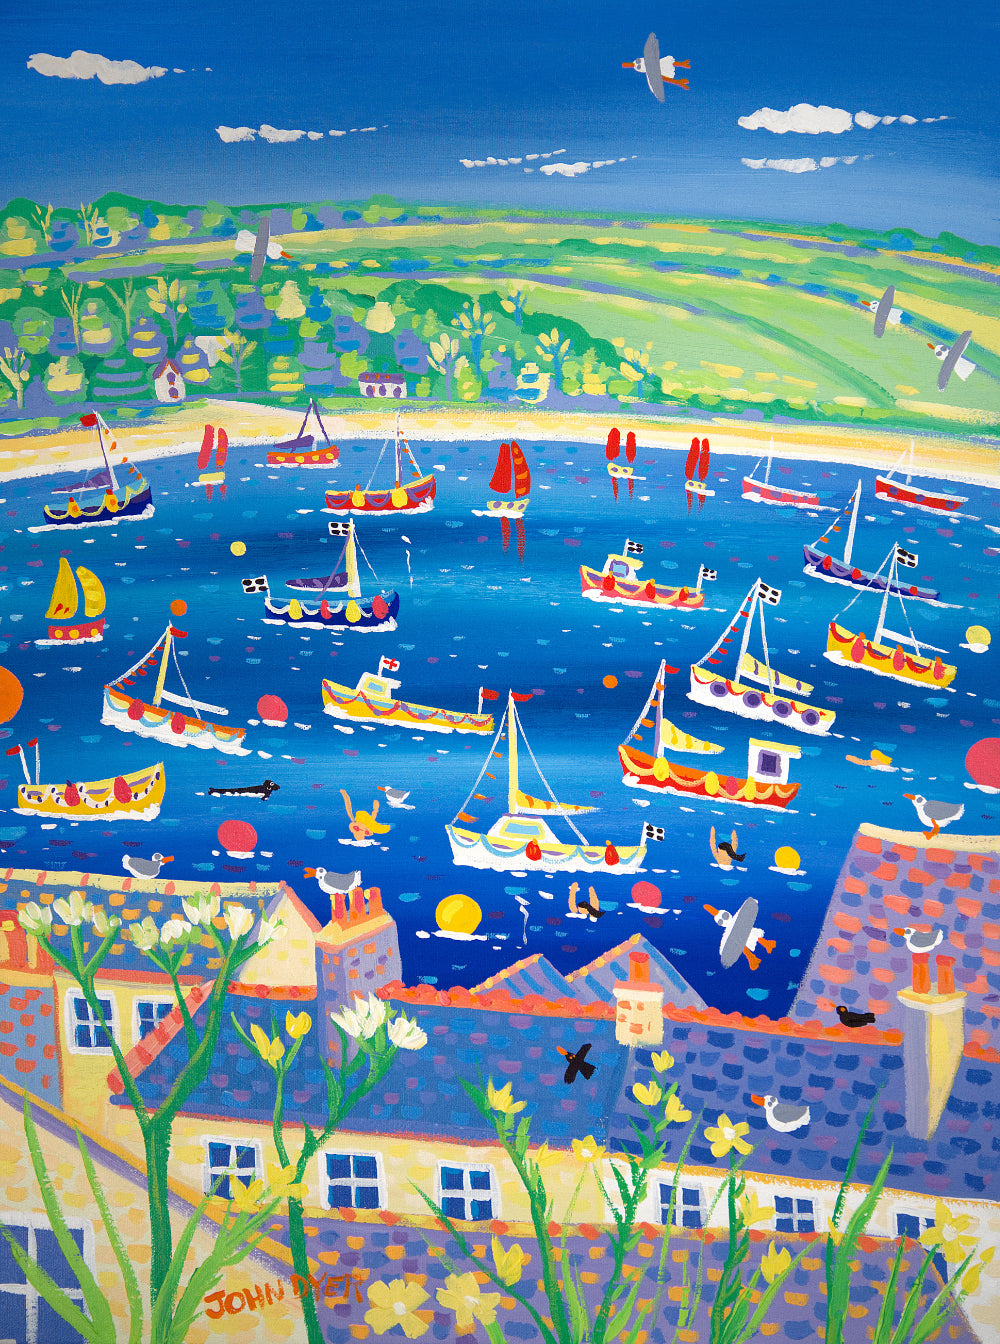 John Dyer Painting. Bobbing Boats on the River, Falmouth, Cornwall